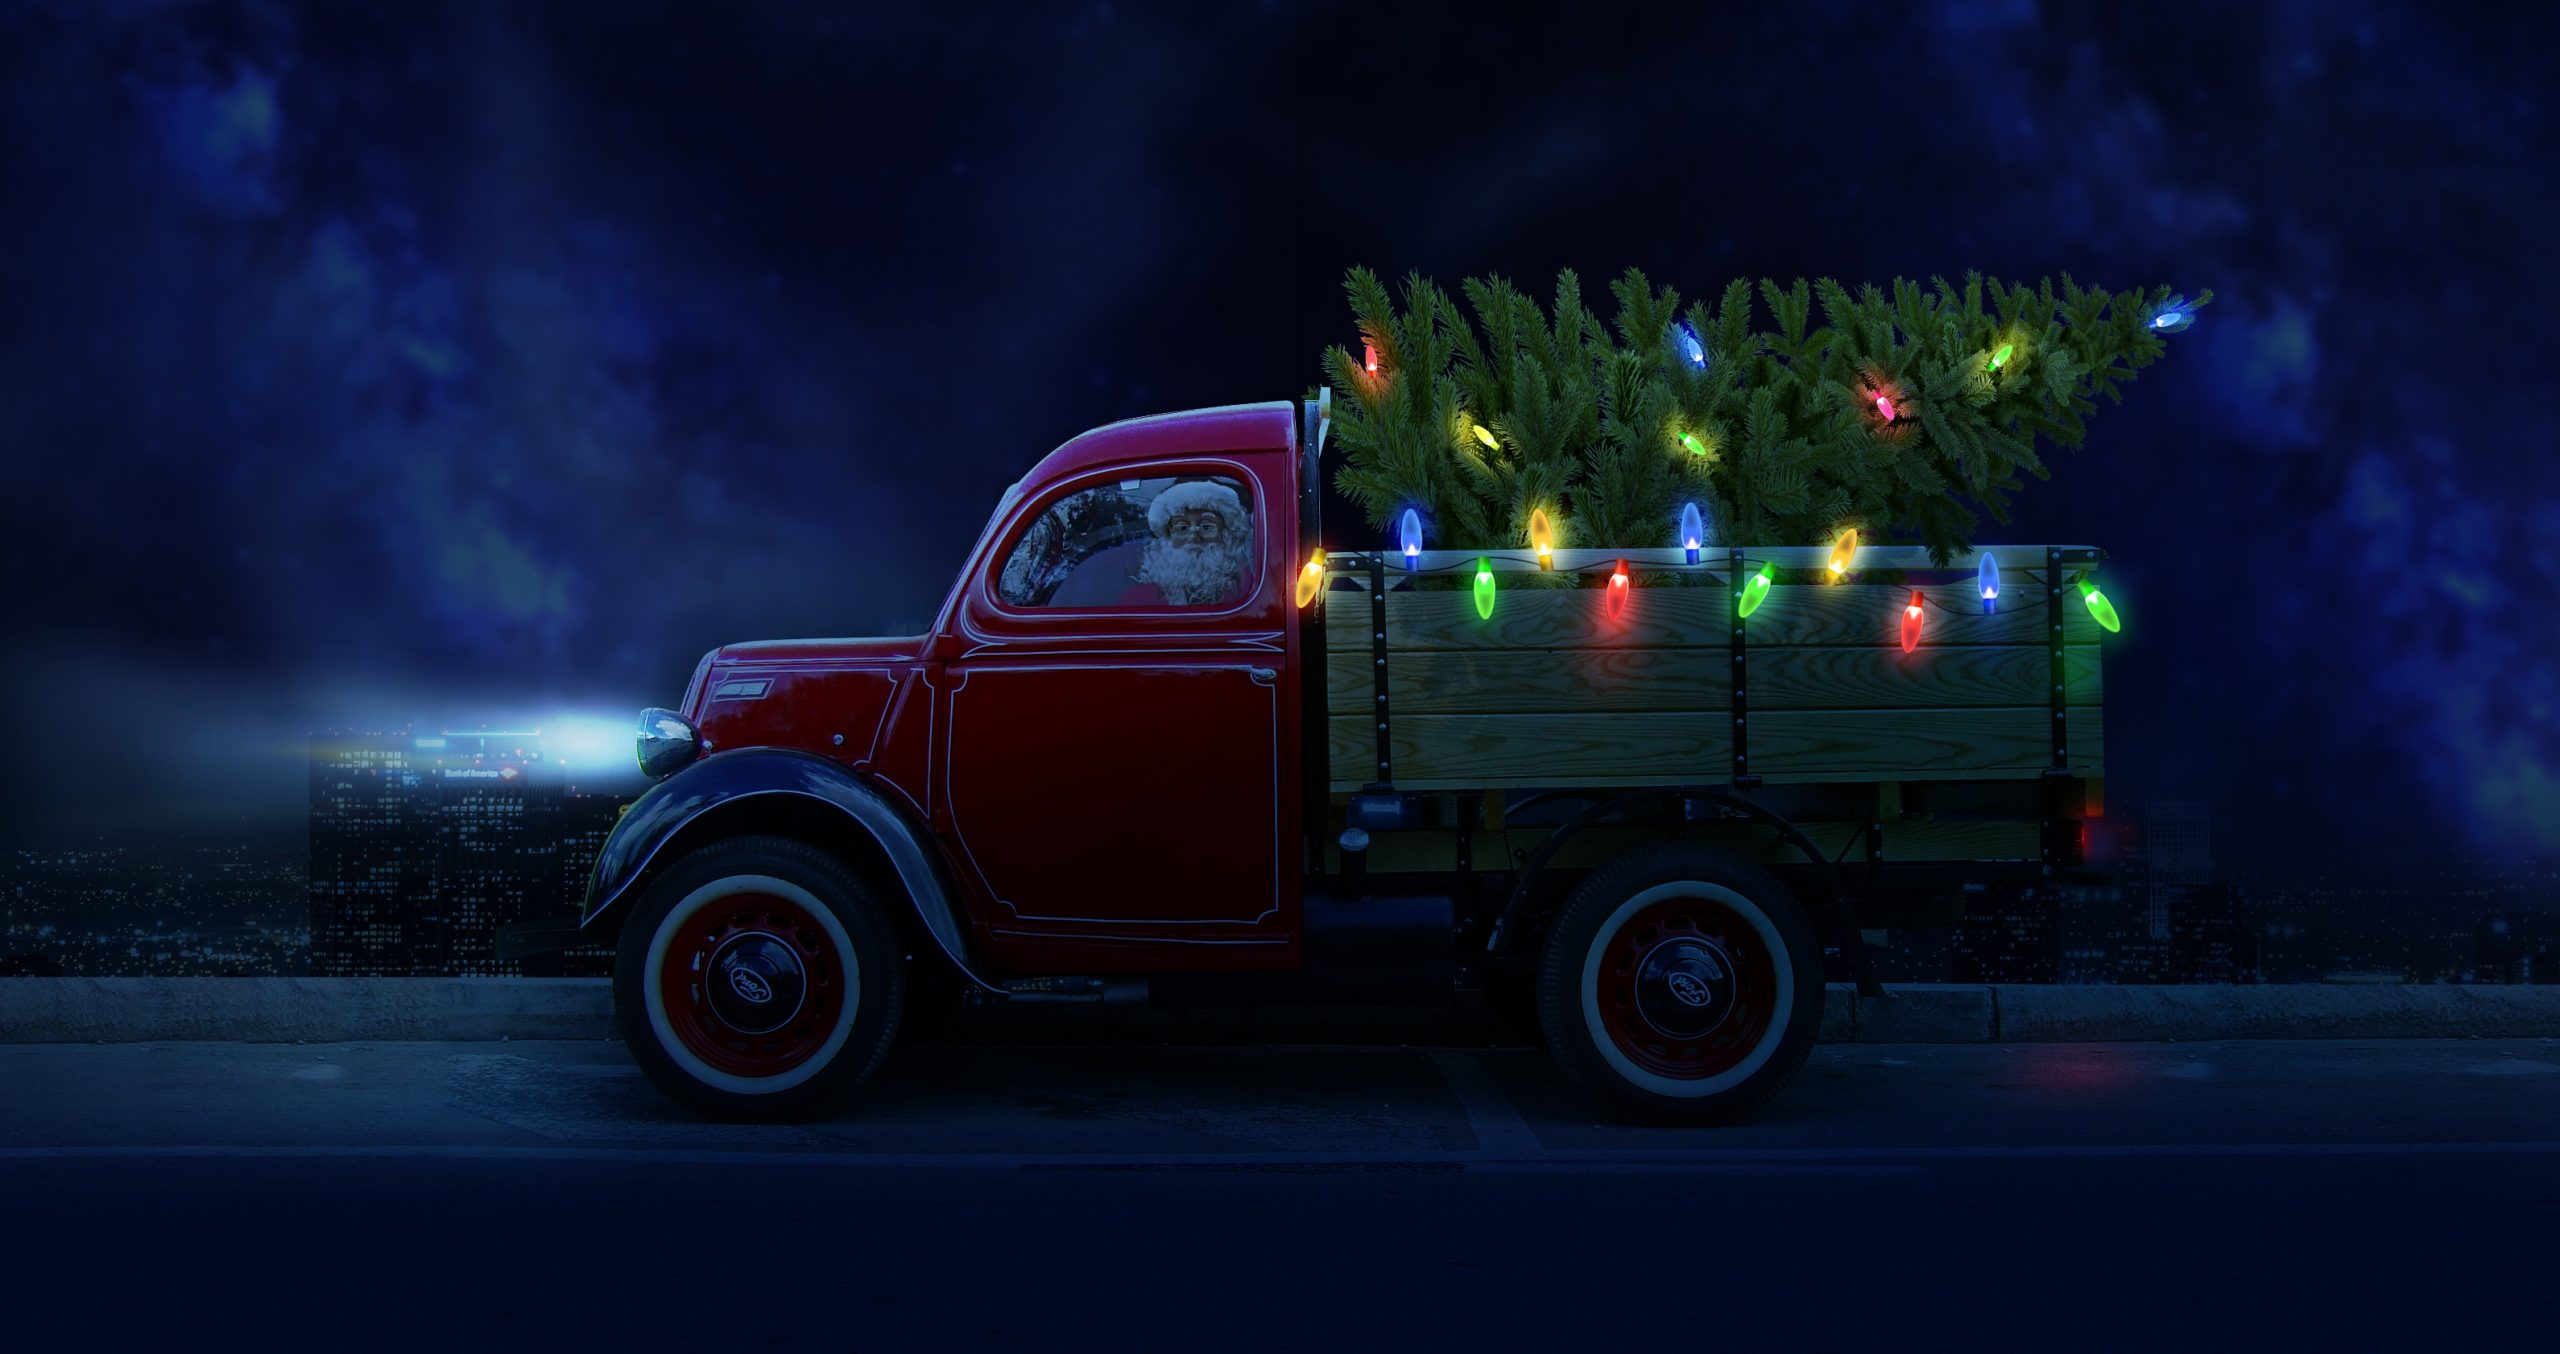 Santa Fun on Wheels - 2020 Christmas Events for the Family